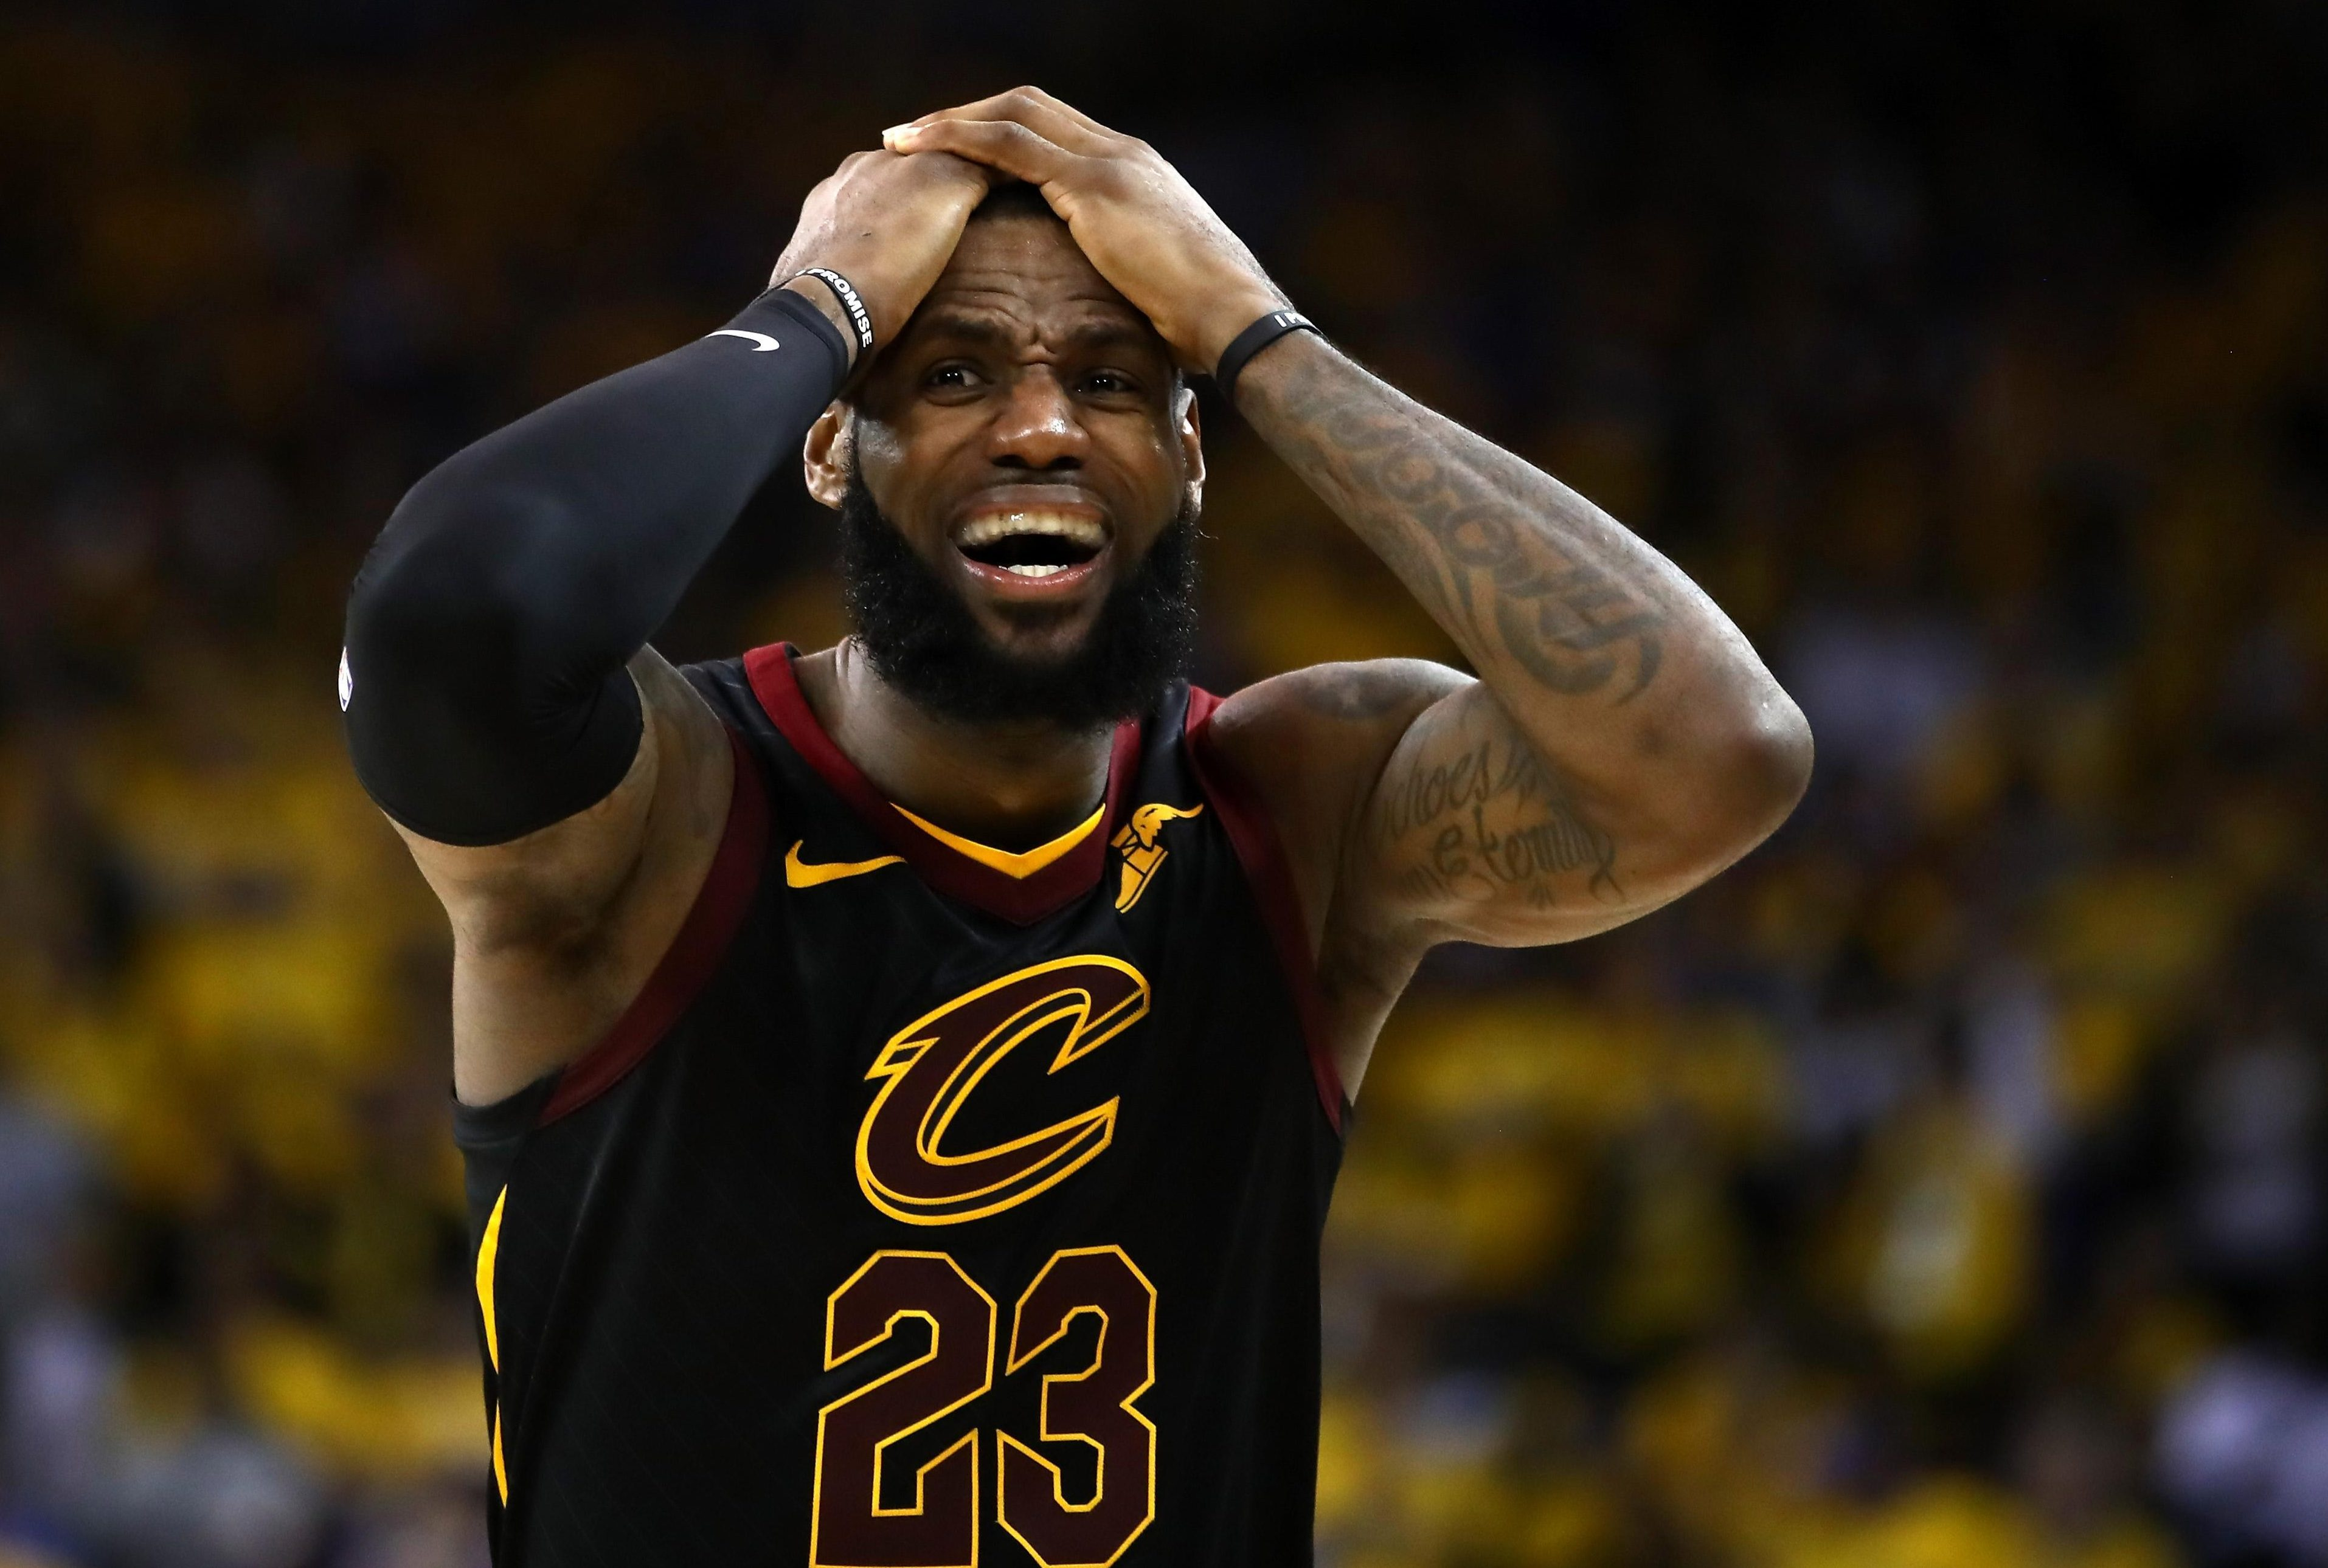 LeBron put up a heroic 51 points but his Cleveland Cavaliers still managed to lose to the Golden State Warriors